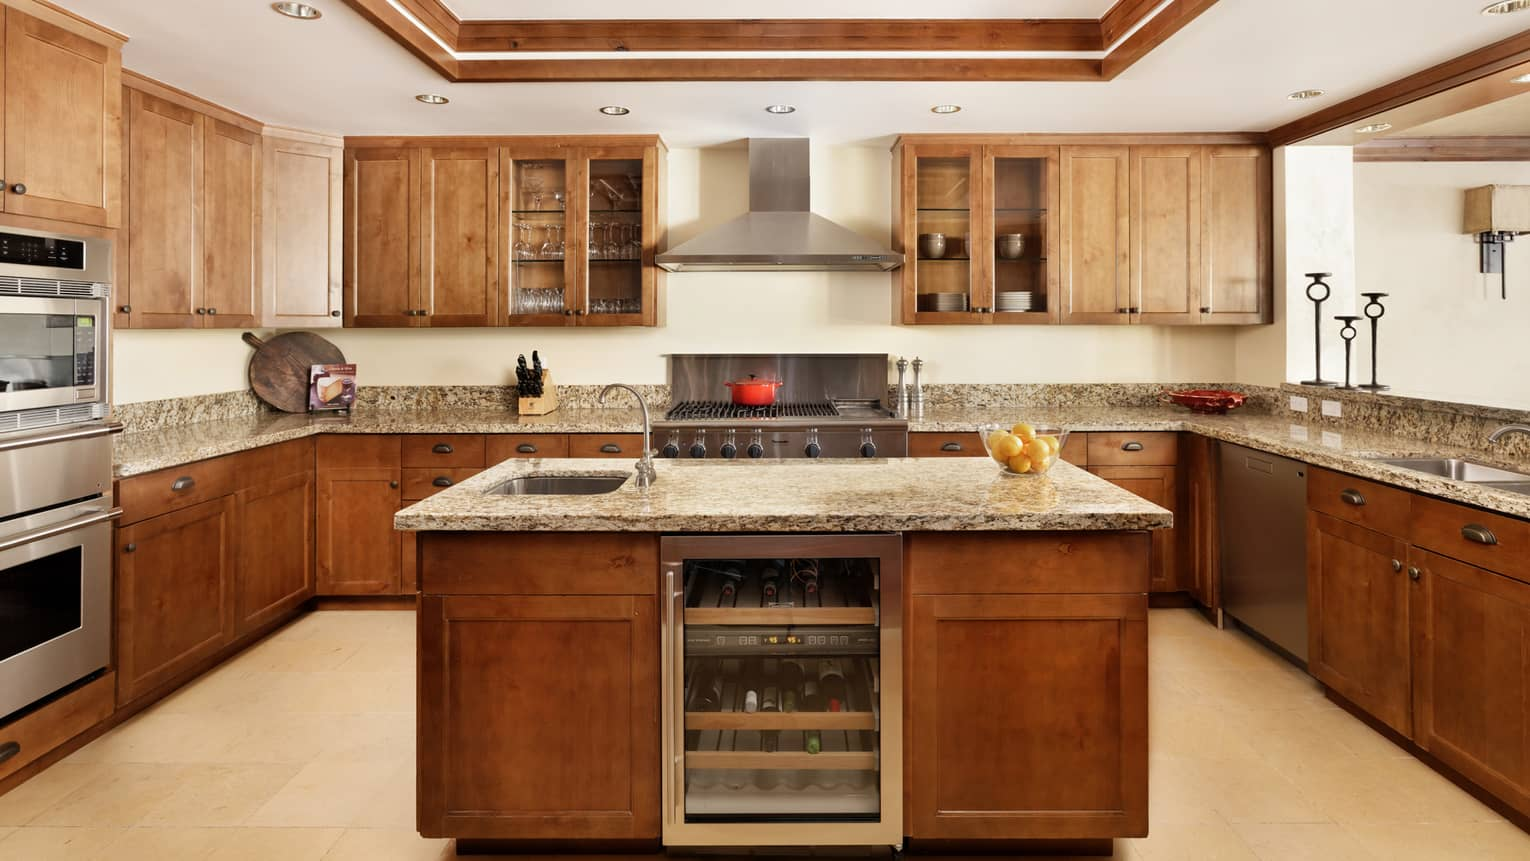 A fully furnished kitchen with granite countertops and an island with a wine chiller